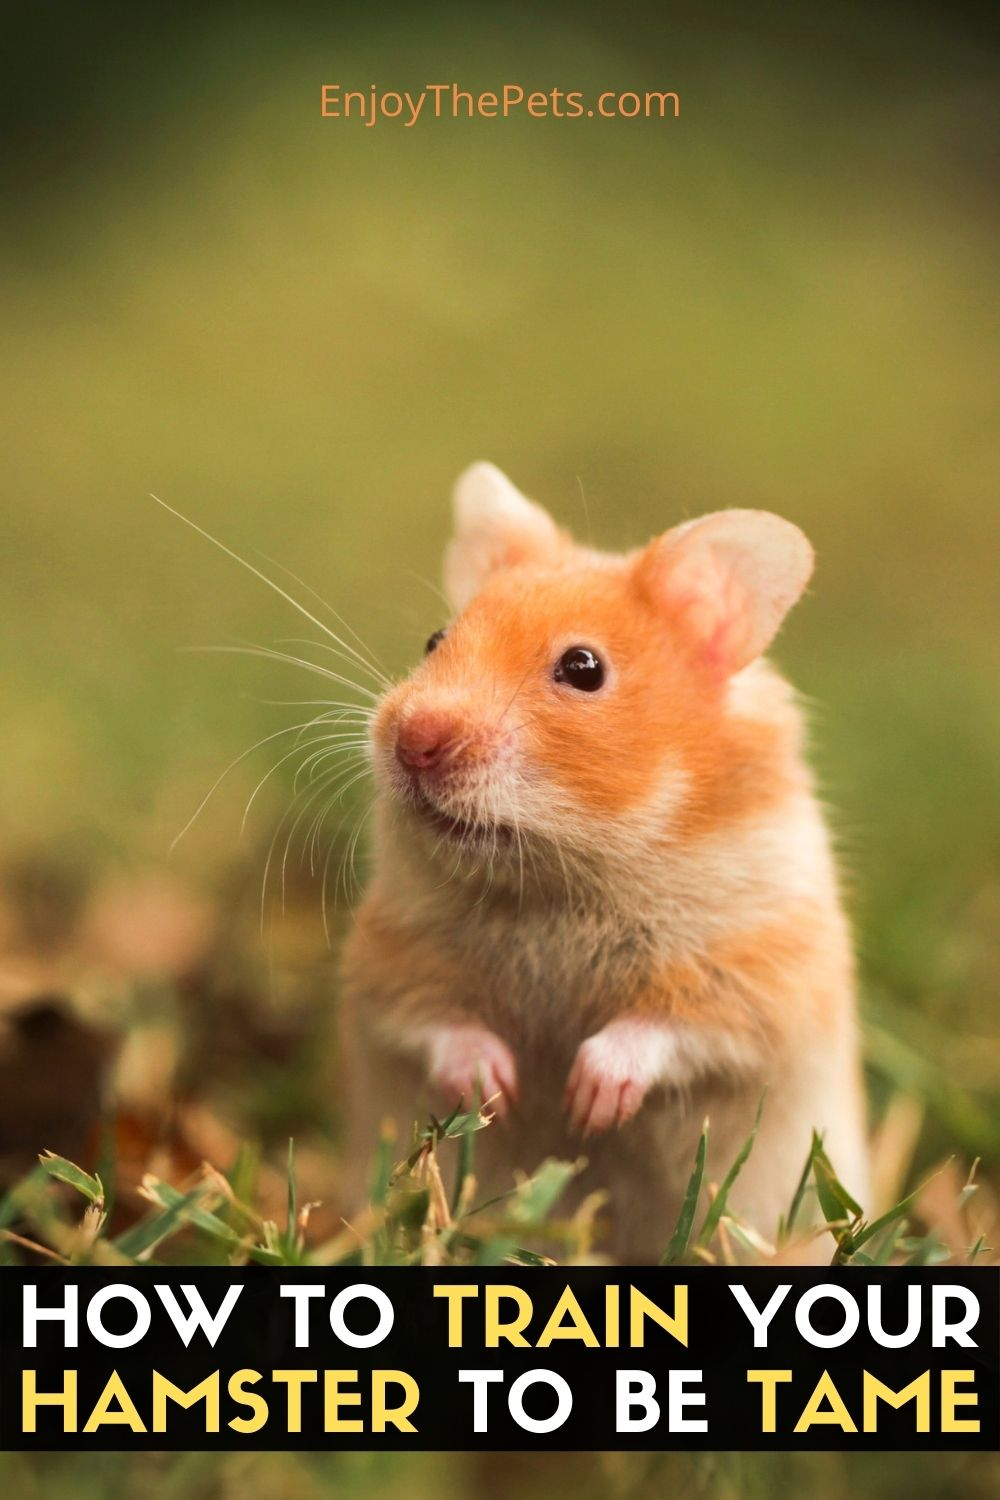 HOW TO TRAIN YOUR HAMSTER TO BE TAME 2